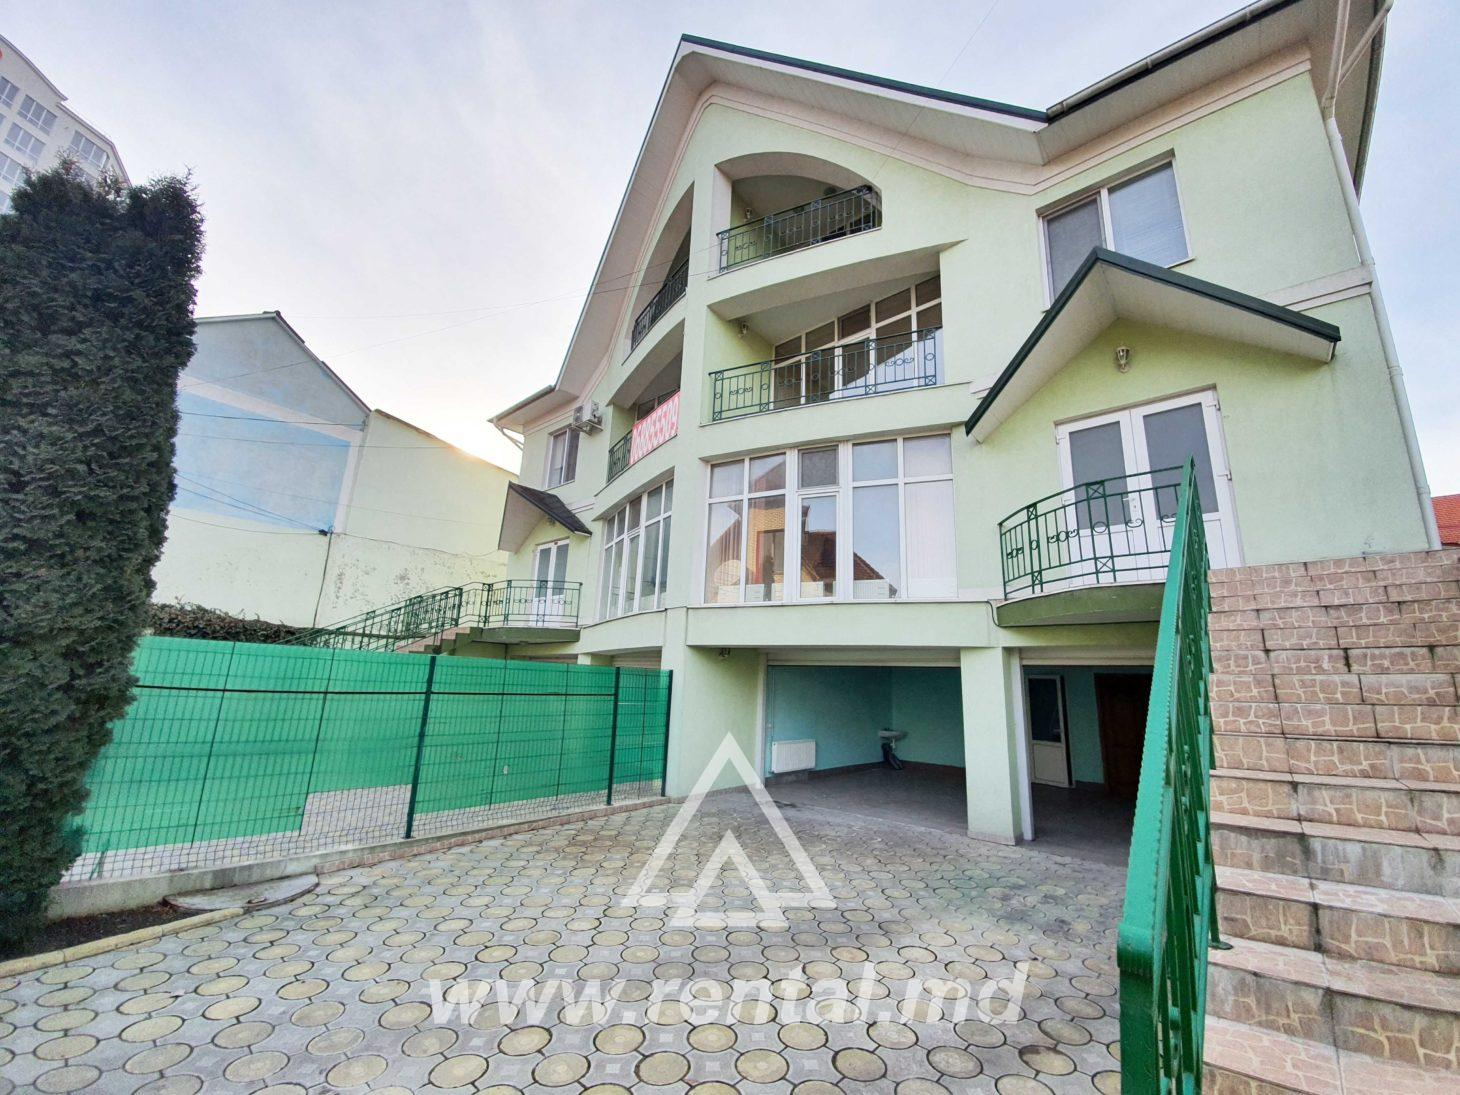 House/office for long term rent in Malina Mica